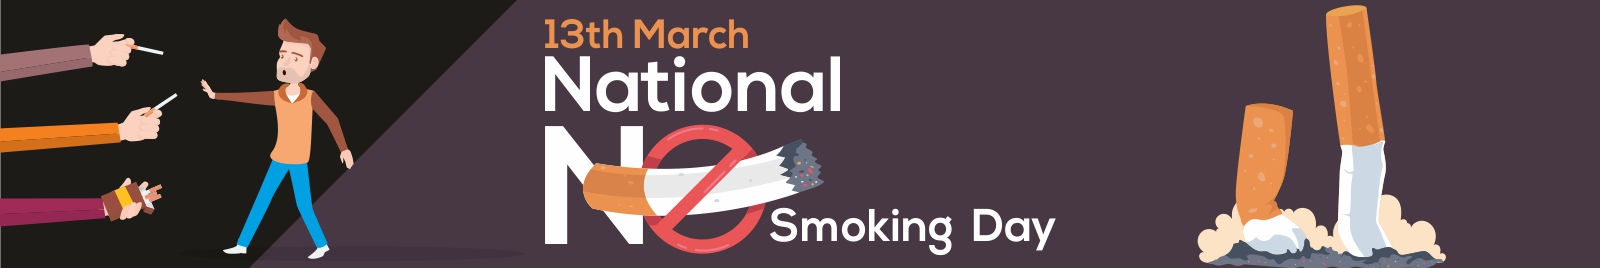 13th March- National No Smoking Day